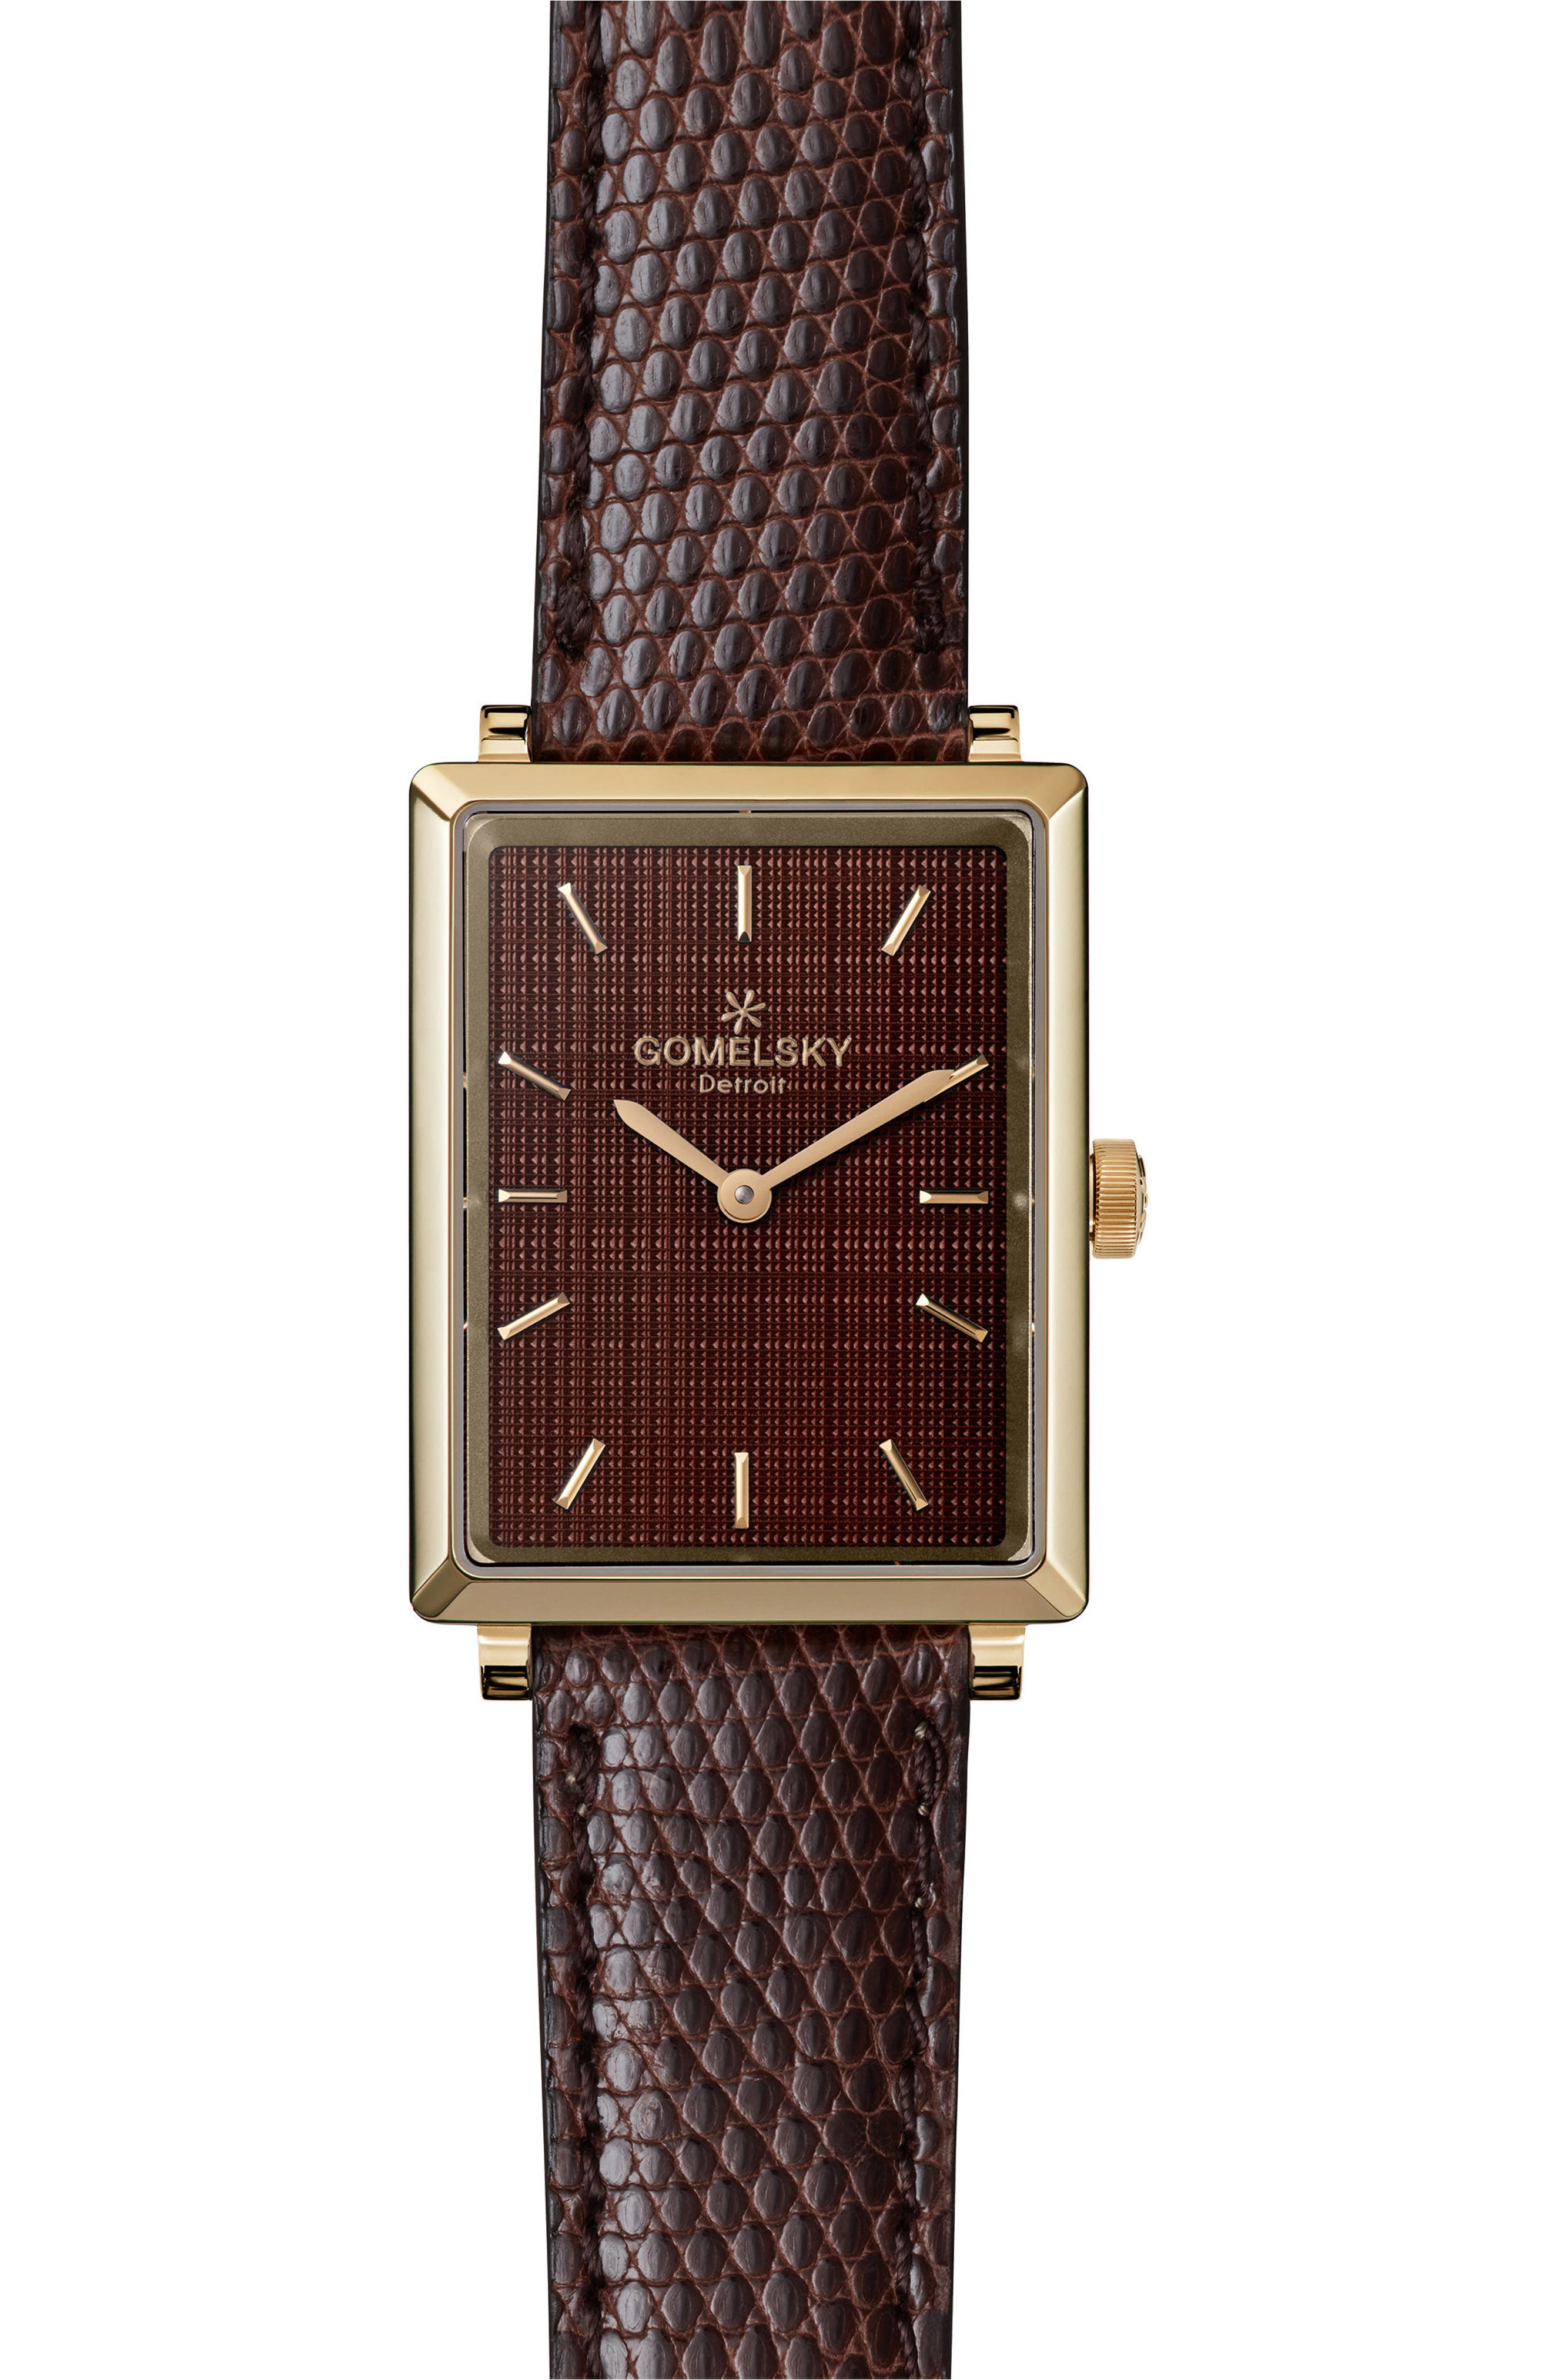 Gomelsky The Shirley Fromer Leather Strap Watch, 32mm x 25mm